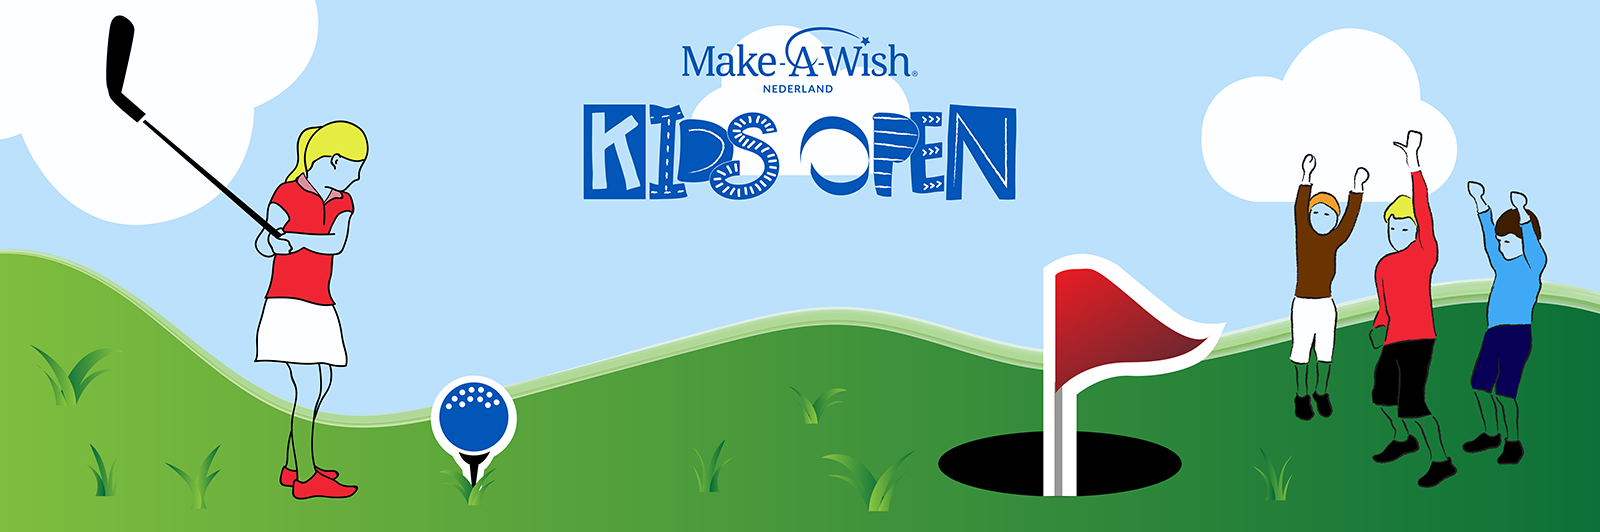 Make a Wish Golftoernooi Nederland 2020